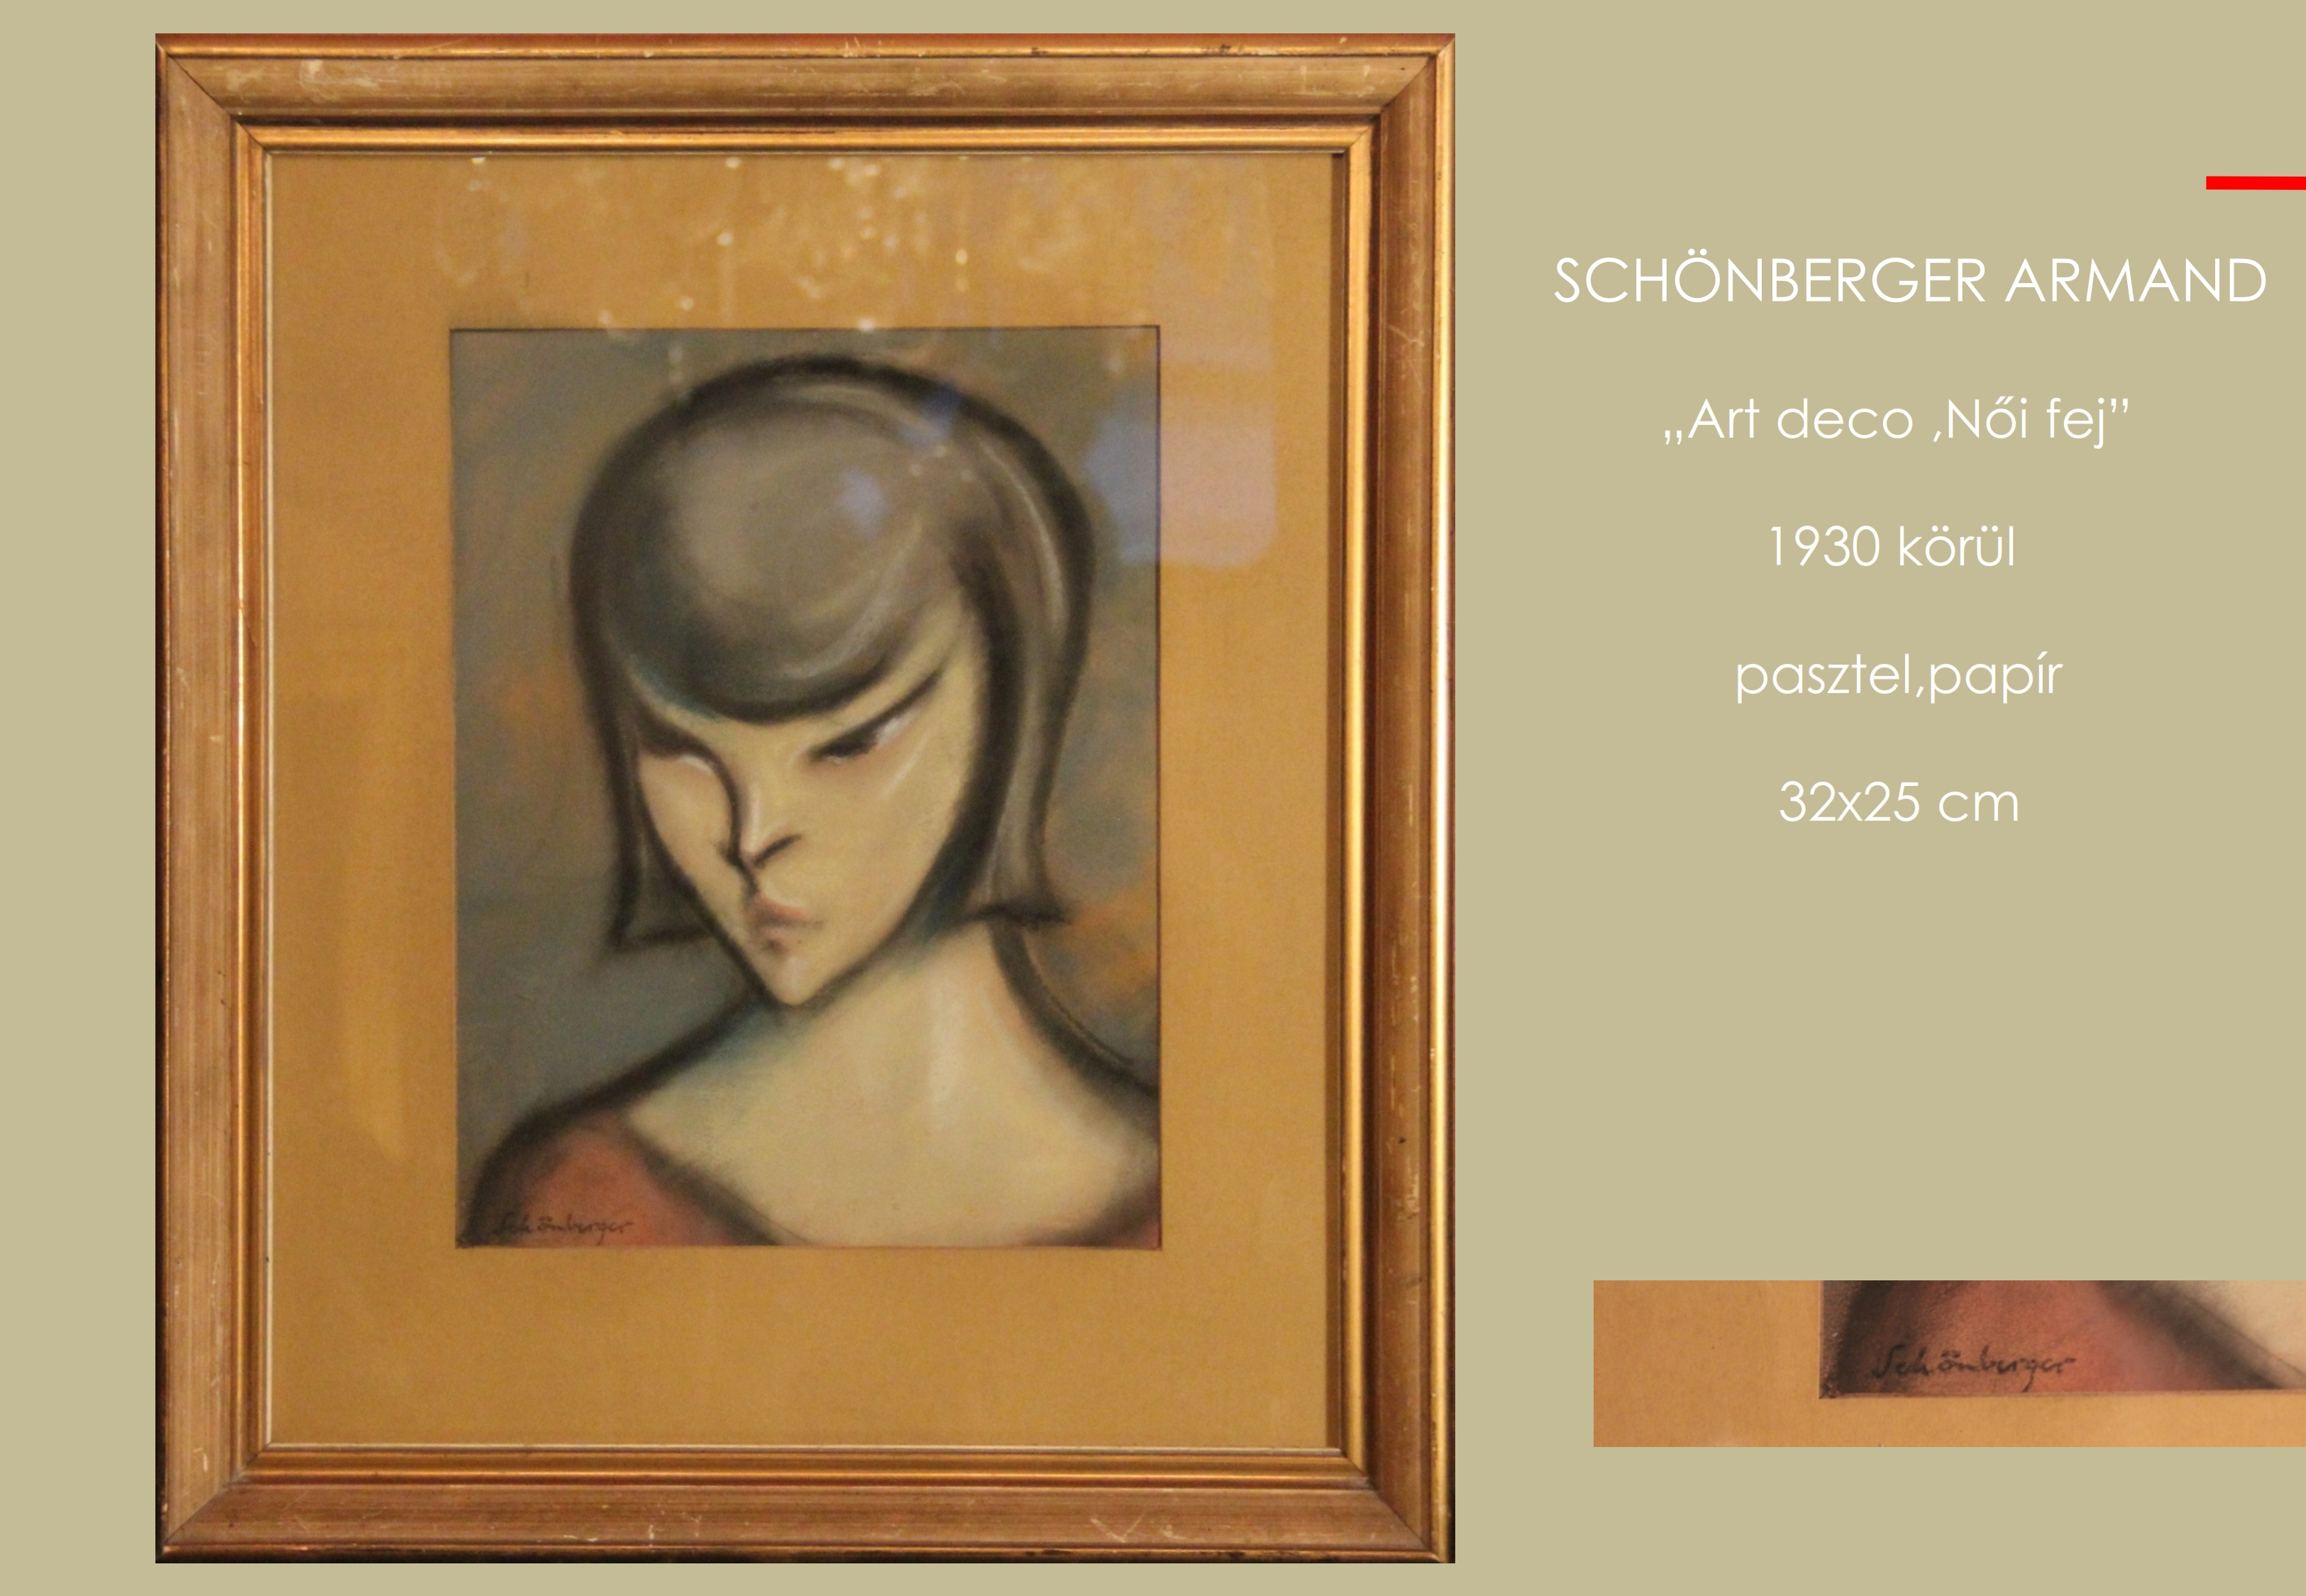 Schönberger Armand - Art deco női fej